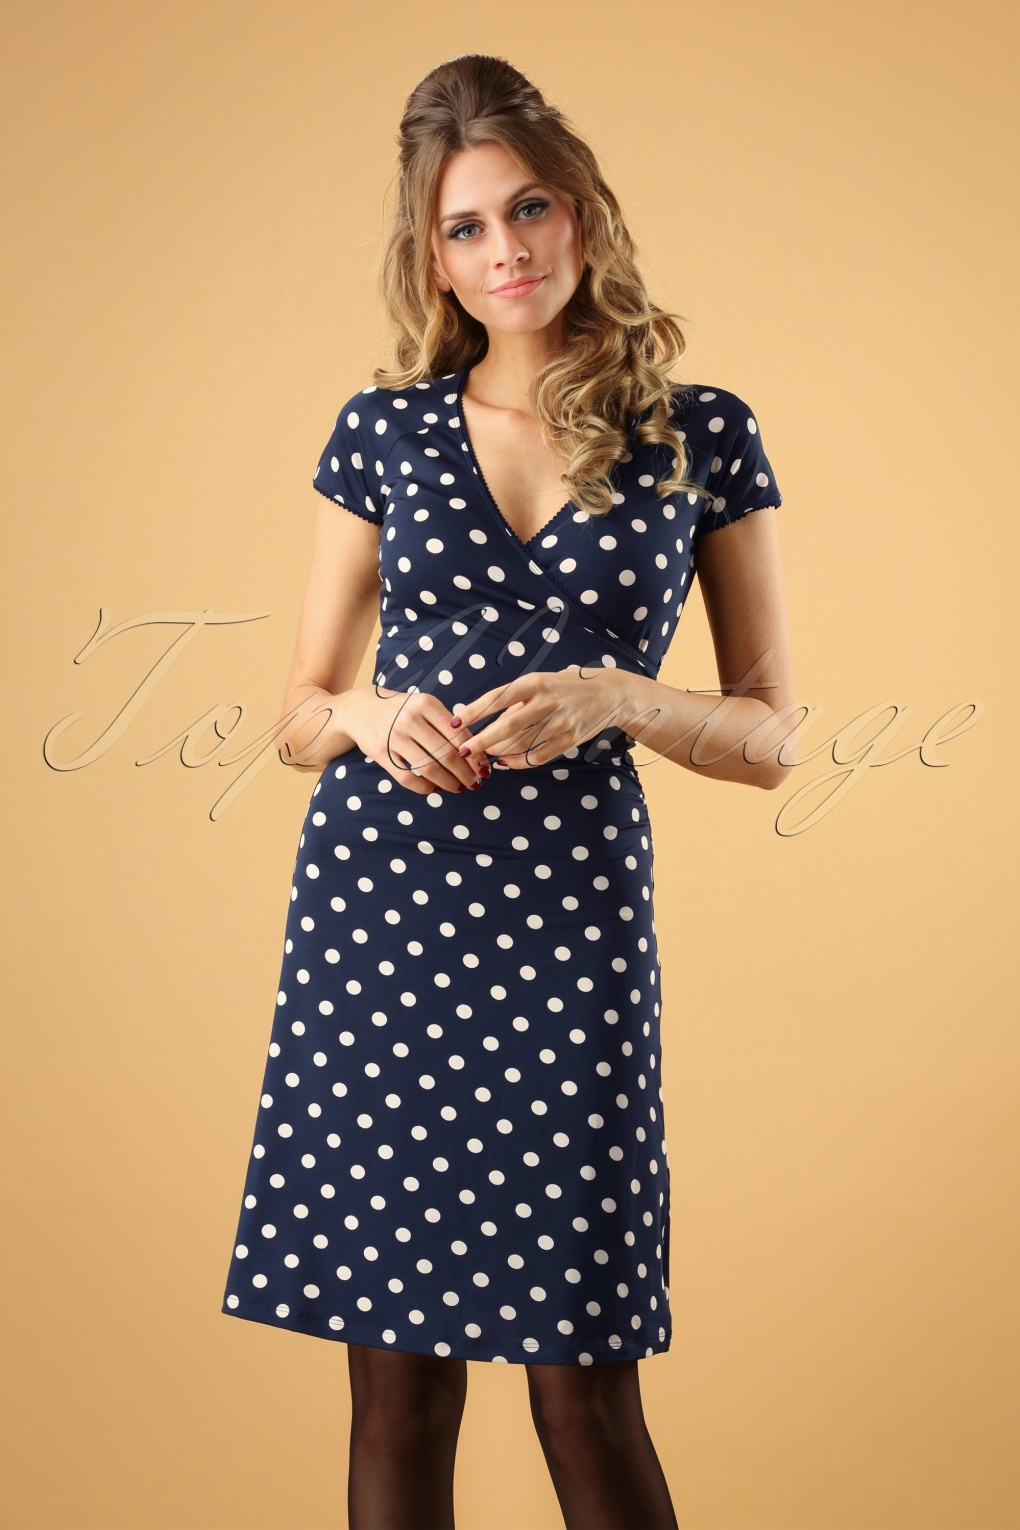 1950s Dresses, 50s Dresses | 1950s Style Dresses 50s Polkadot Cross Dress in Inkblue Partypolka £83.79 AT vintagedancer.com